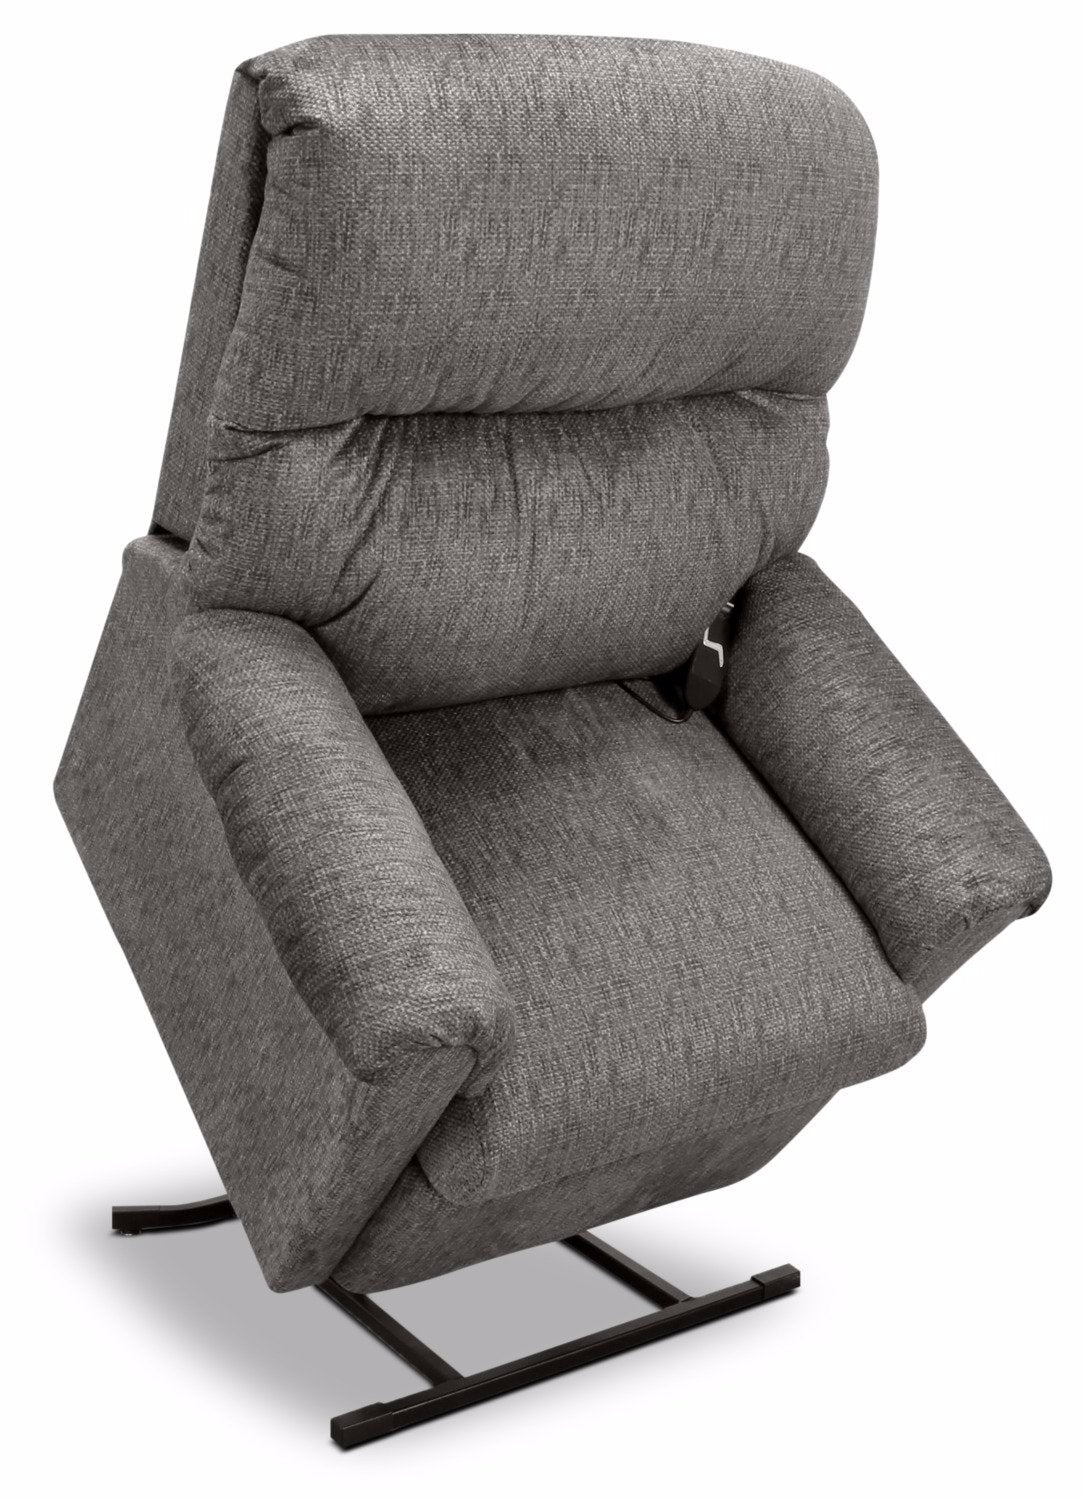 Swell 481 Textured Chenille 3 Position Power Lift Chair Grey Dailytribune Chair Design For Home Dailytribuneorg